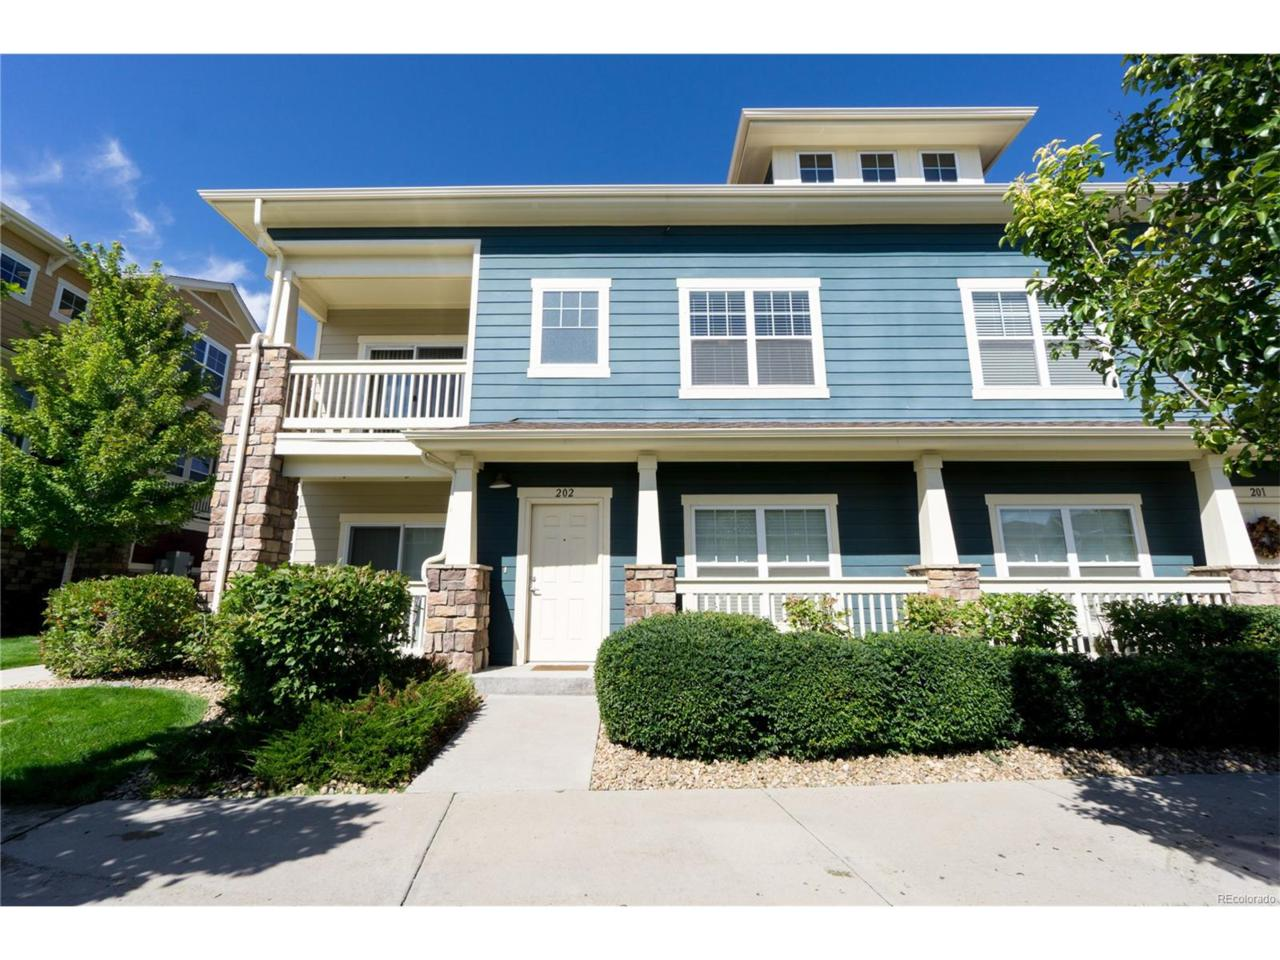 9489 Ashbury Circle #202, Parker, CO 80134 (MLS #3731676) :: 8z Real Estate